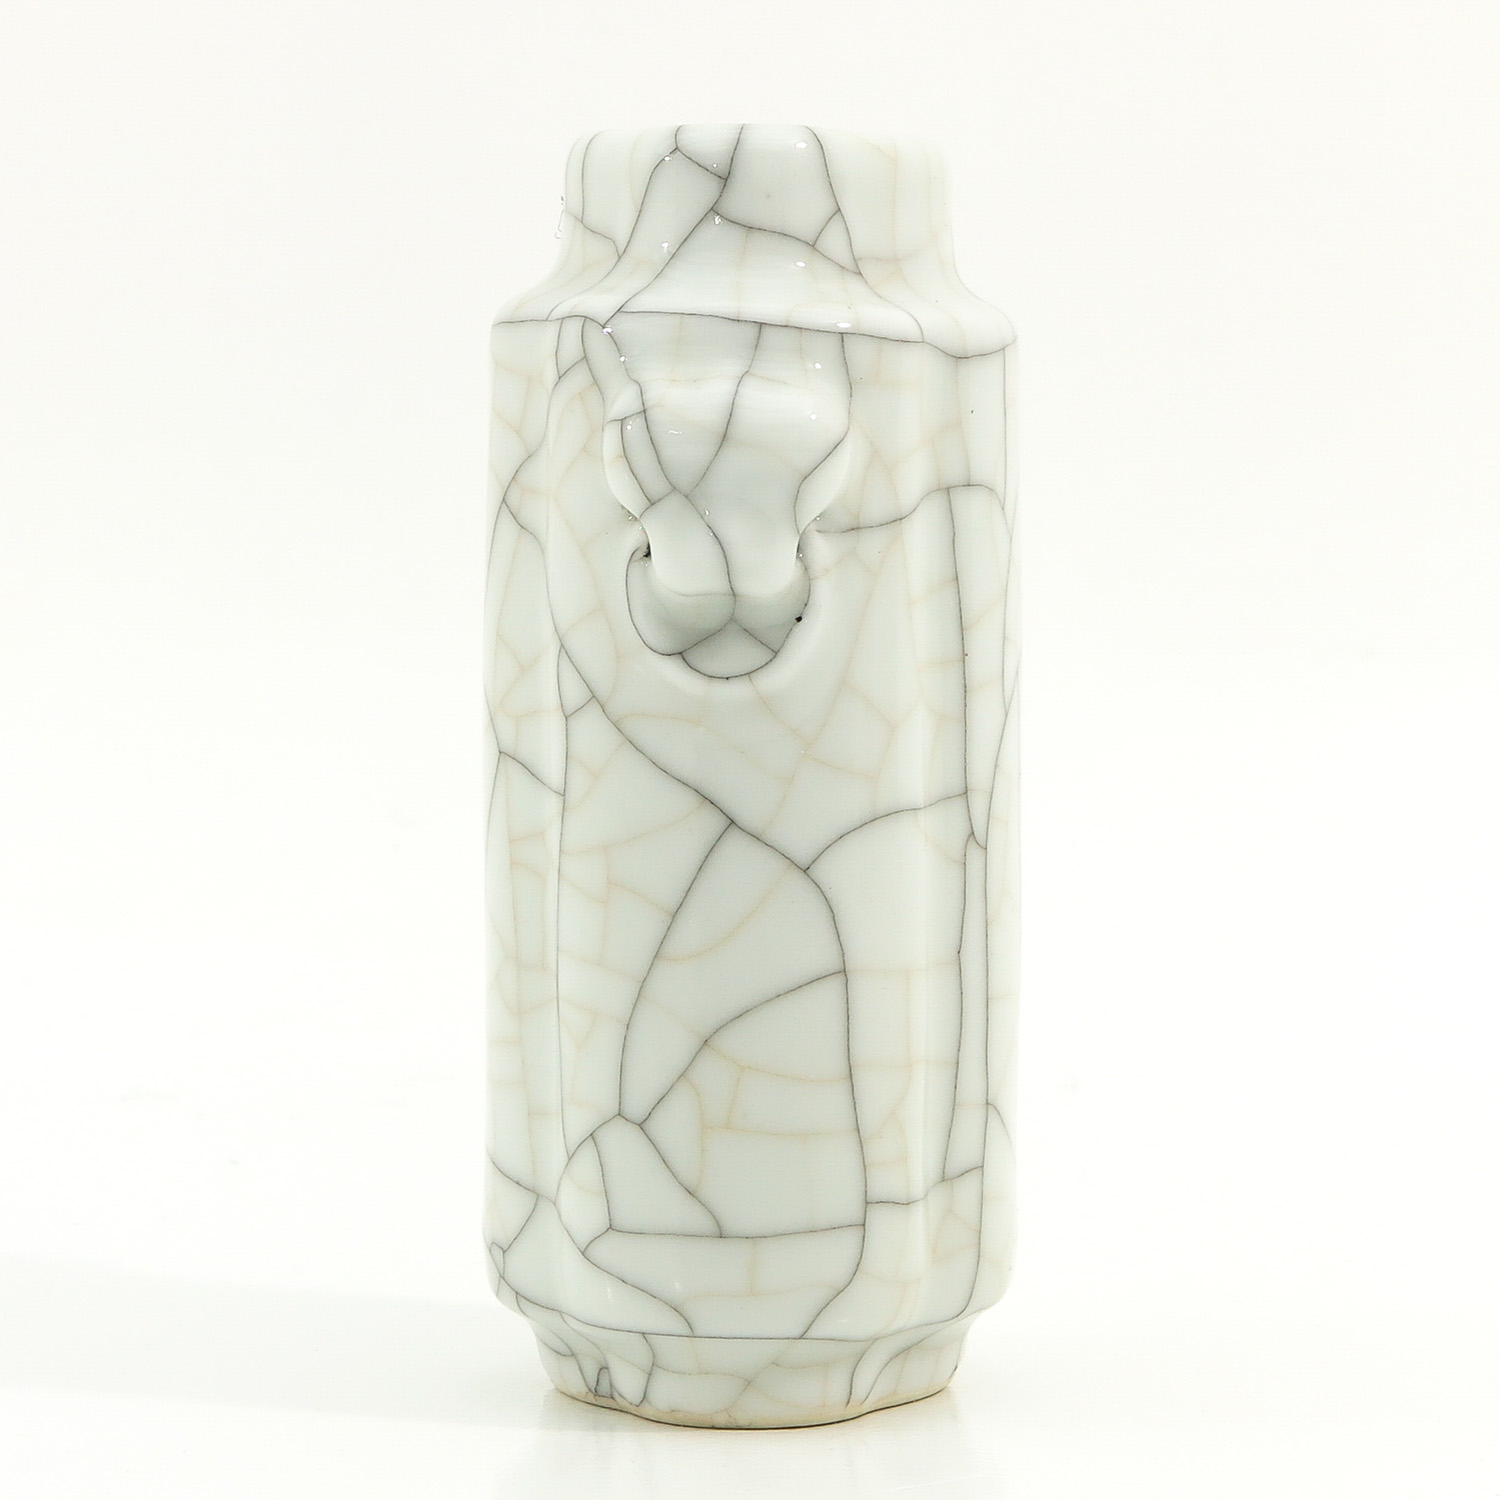 A Crackle Decor Vase - Image 4 of 9